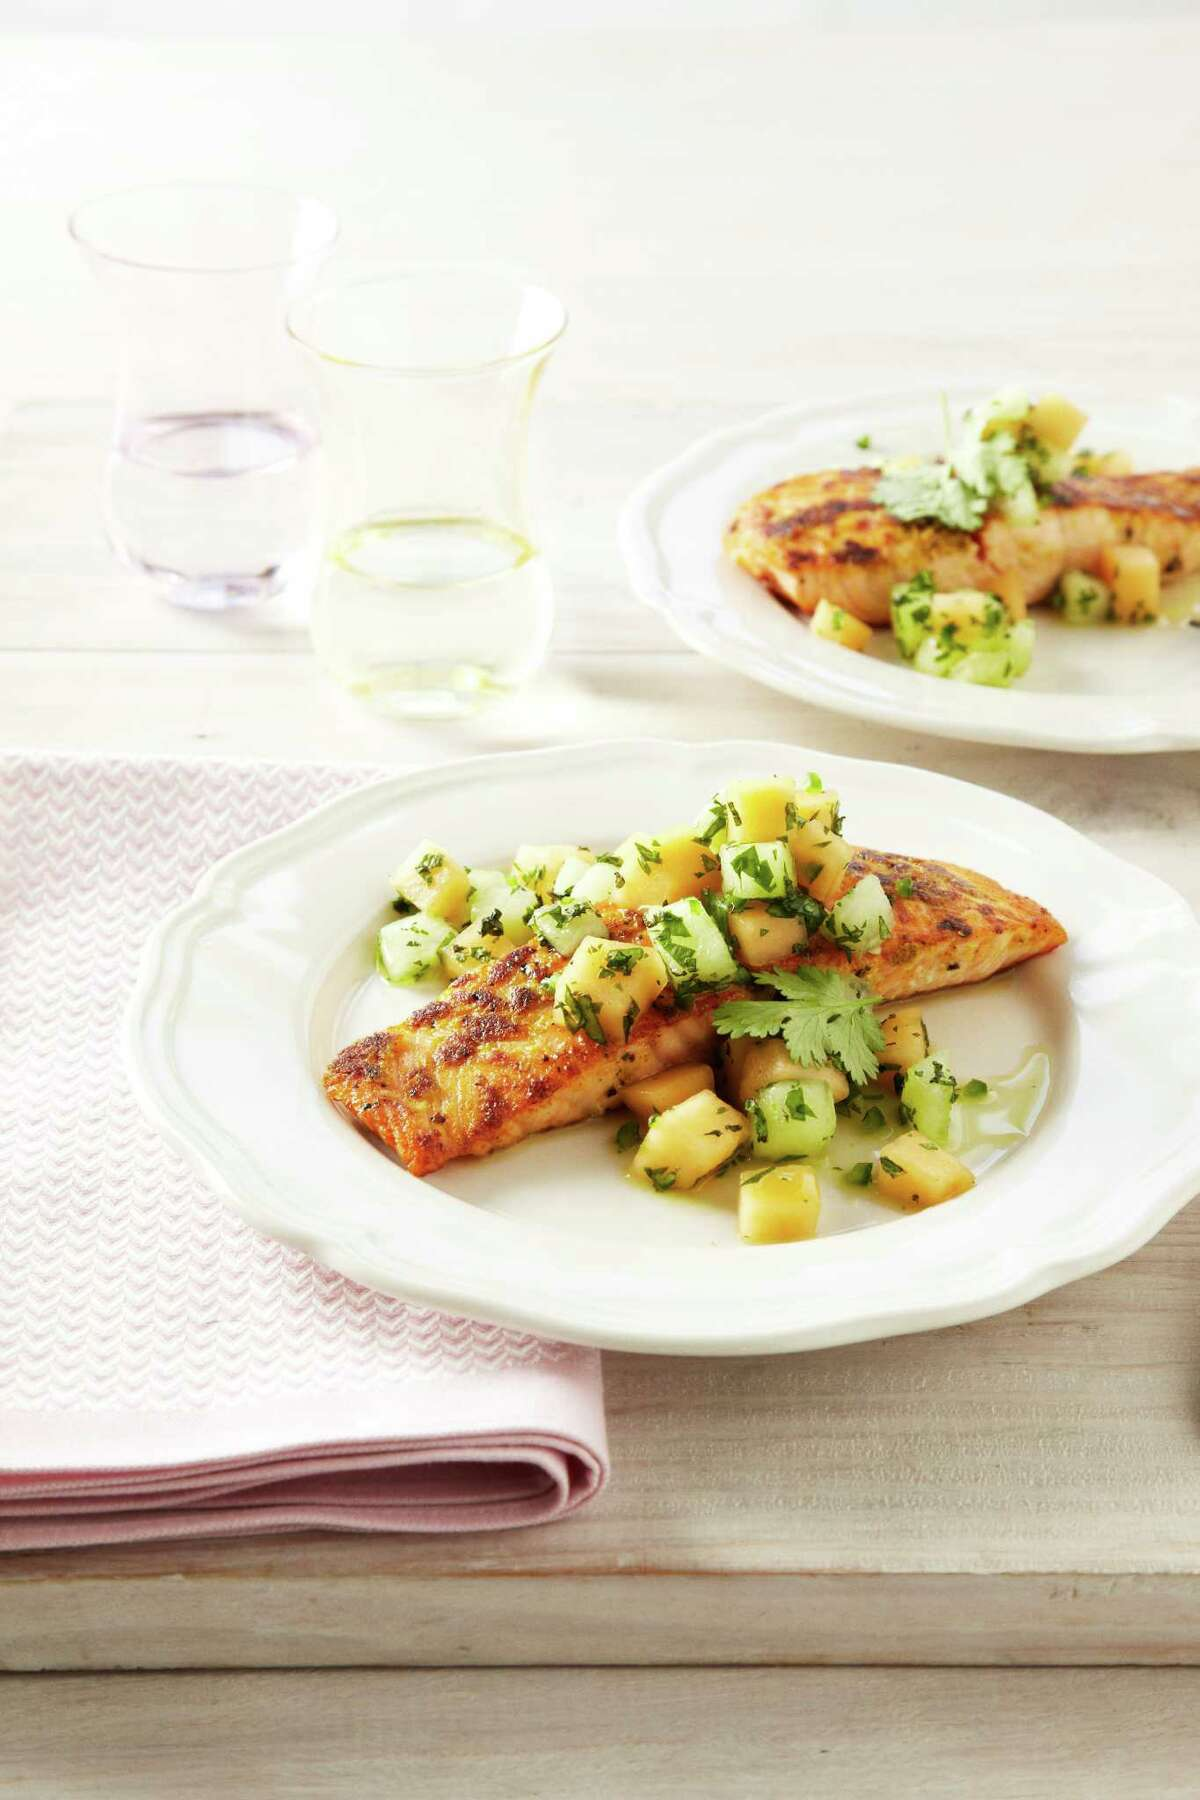 Good Housekeeping recipe for Ginger-Crusted Salmon with Melon Salsa.